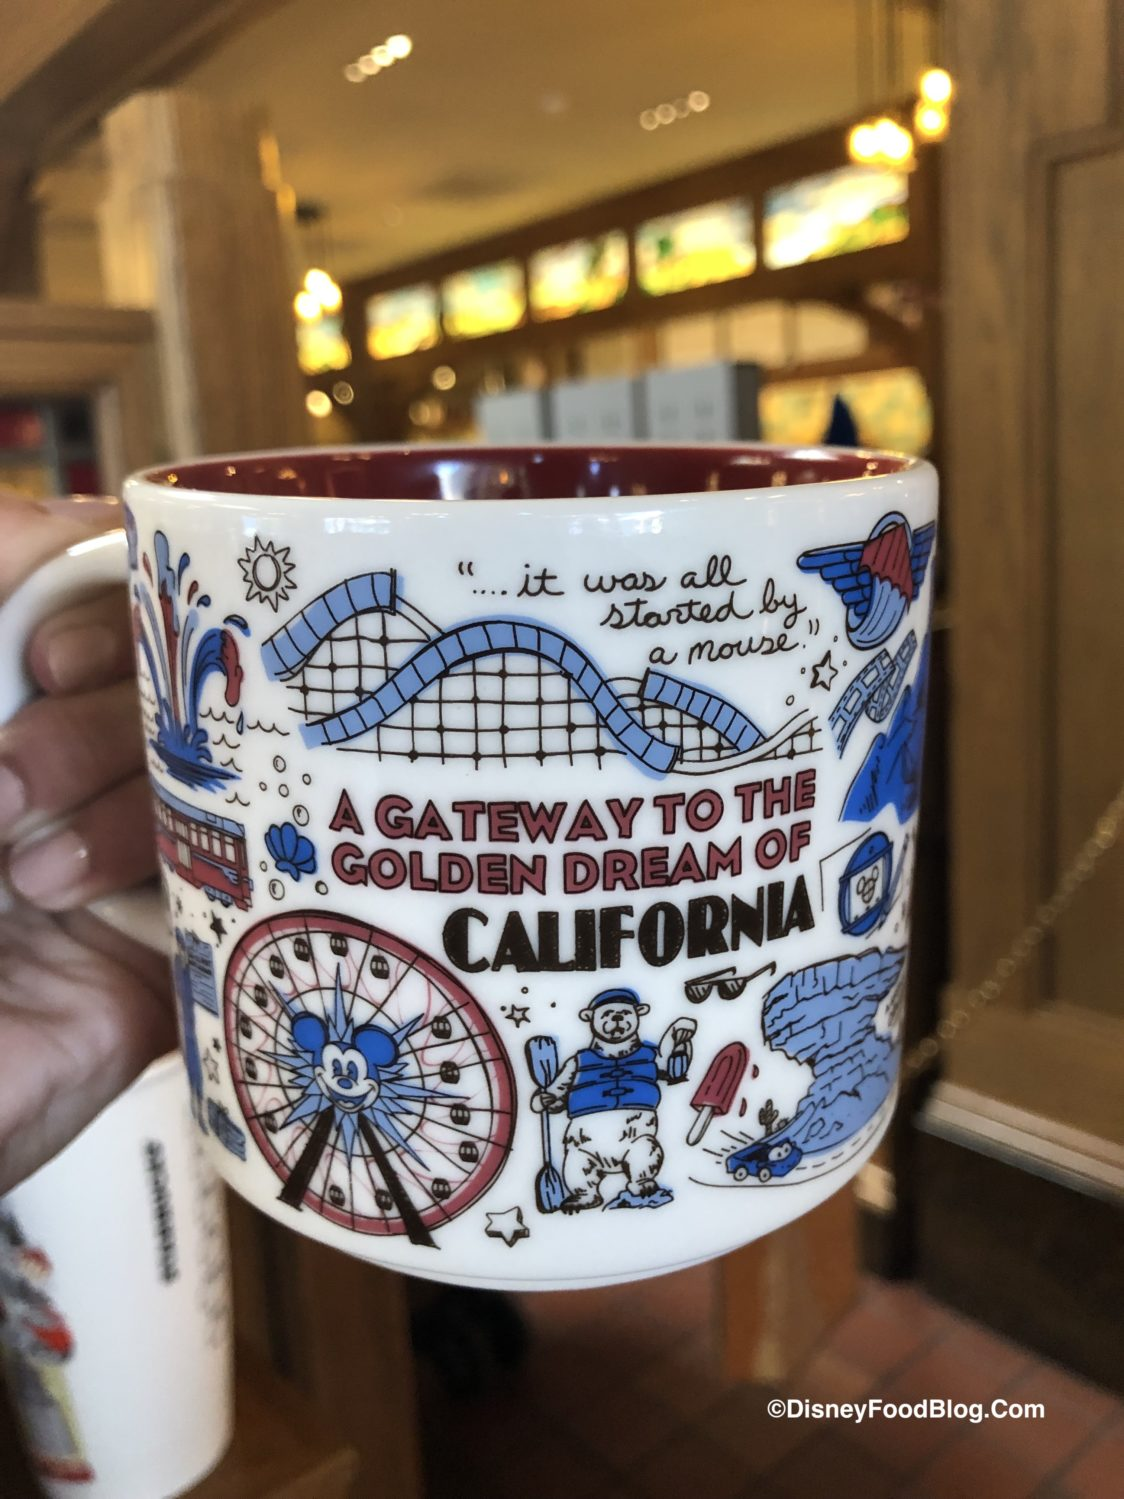 Check Out The New Disney California Adventure Starbucks Been There Series Mug The Disney Food Blog